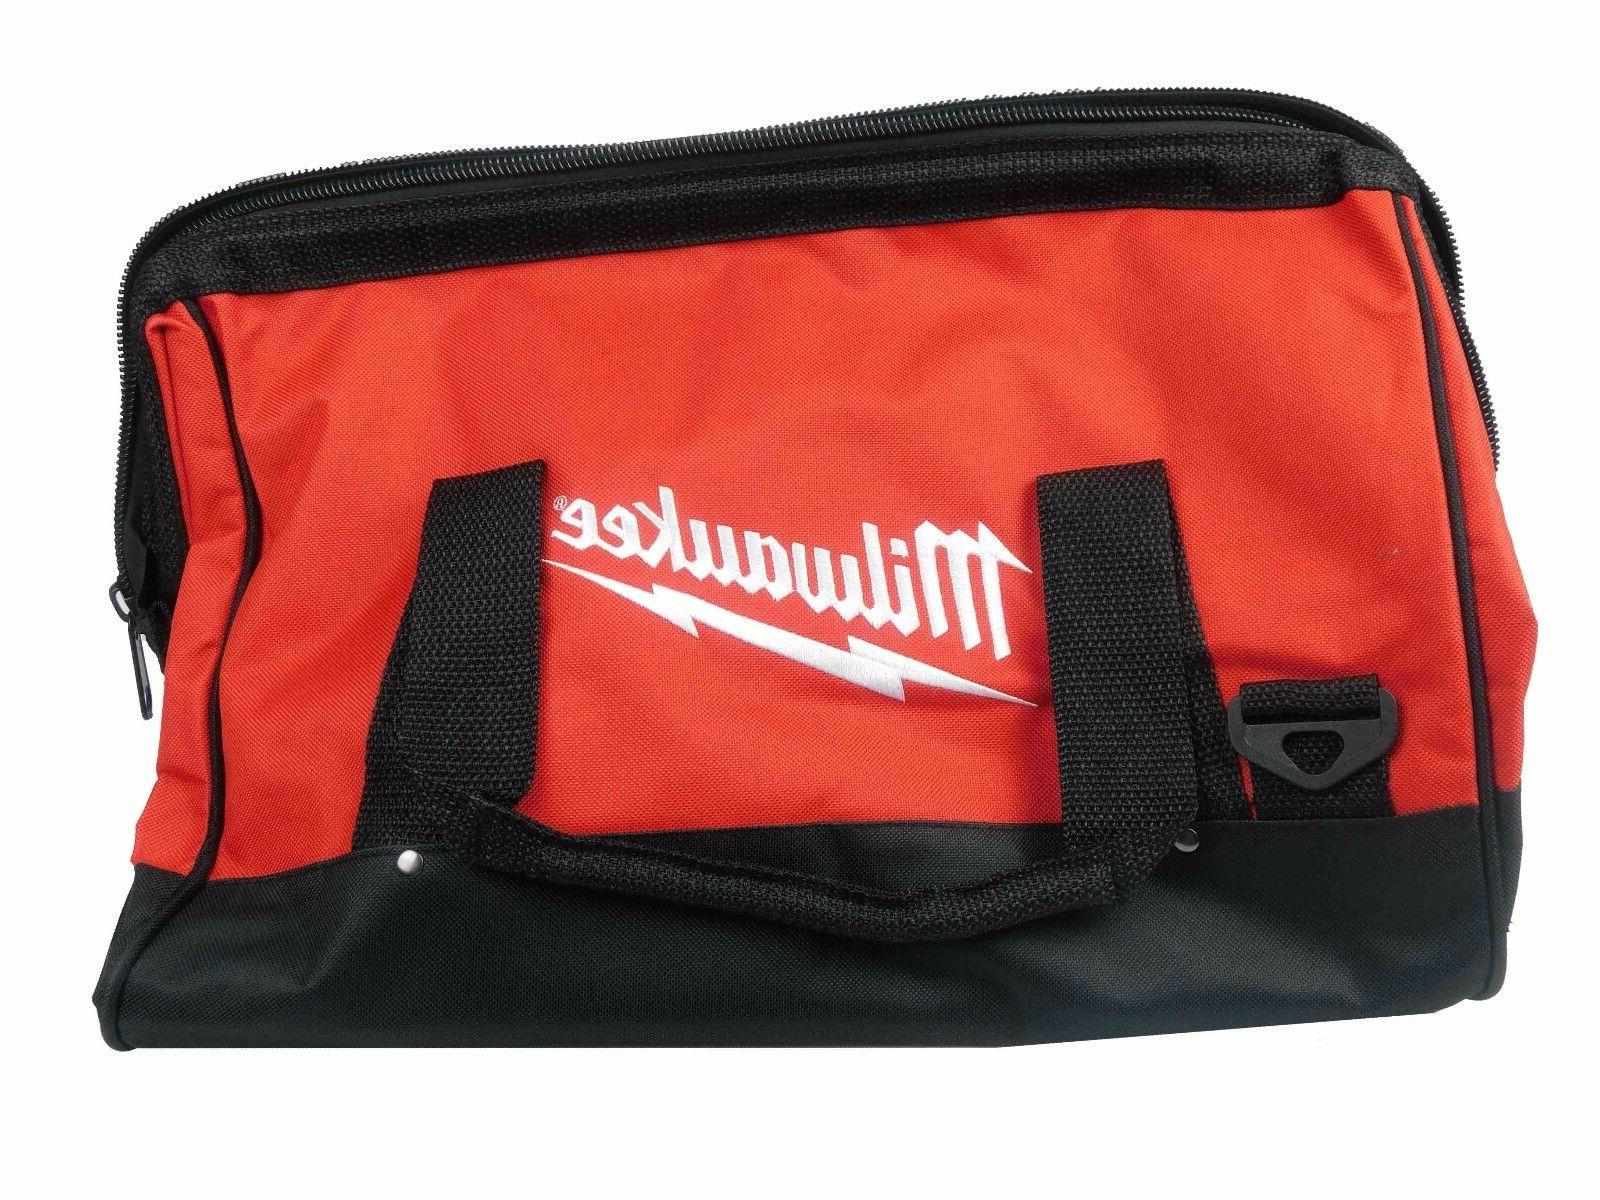 Milwaukee 6-Pocket Duty Industrial Tool